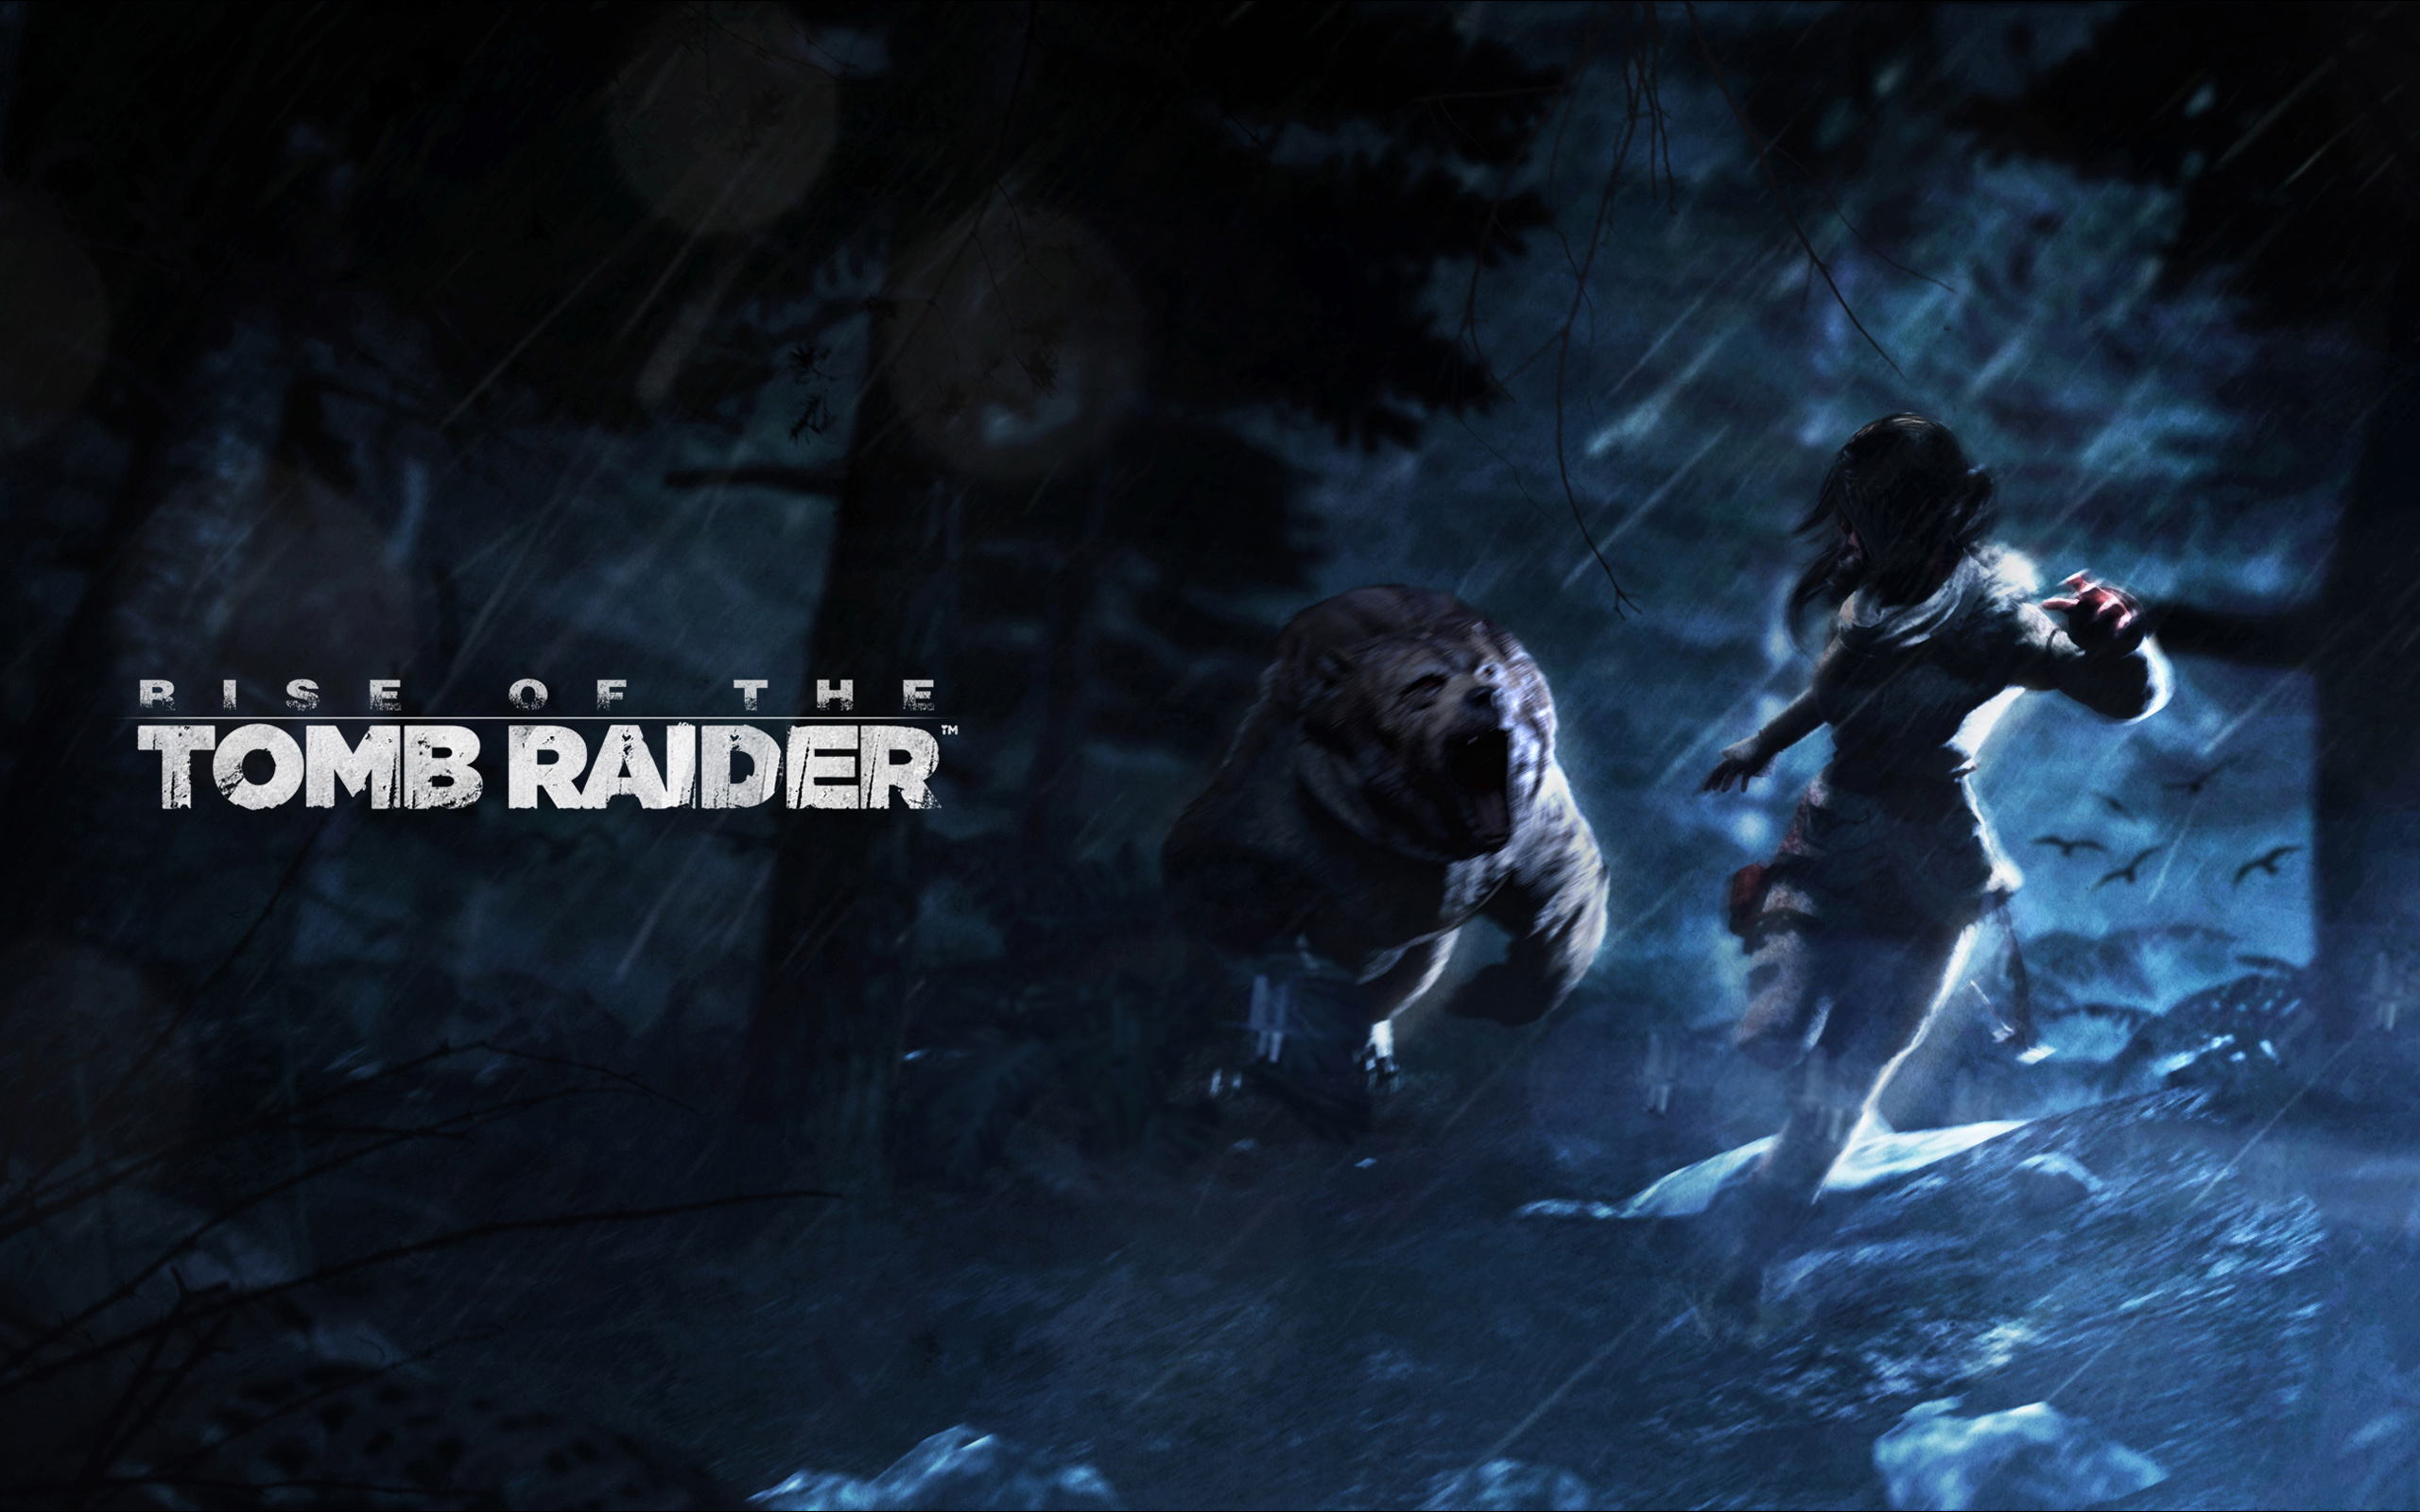 HD Wallpapers Rise of the Tomb Raider Artwork